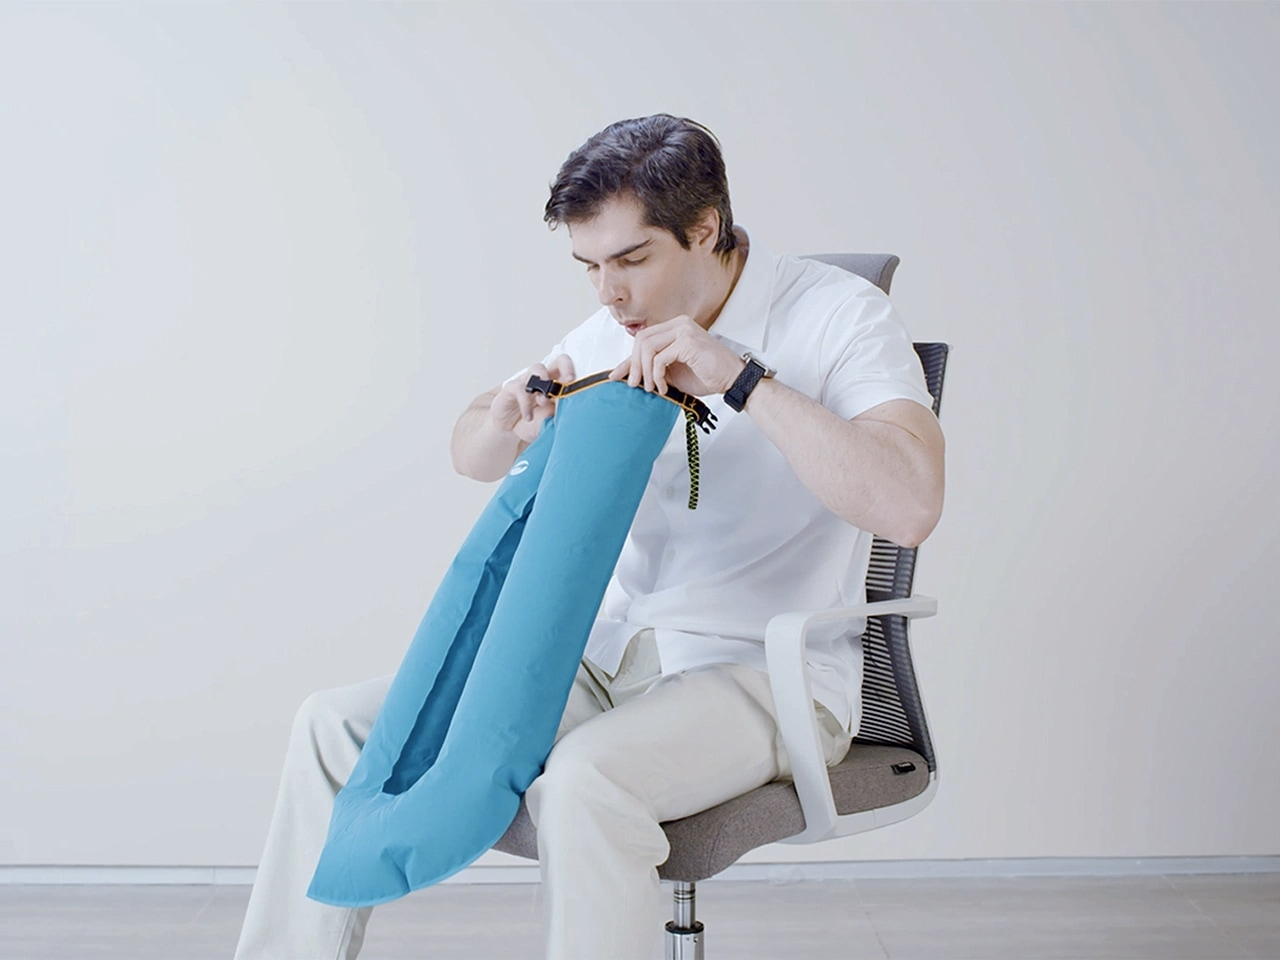 Easierhike® Alpha Pillow could get fully inflated with ONE breath. It is germ-free since your mouth does not need to contact any part of the seal.